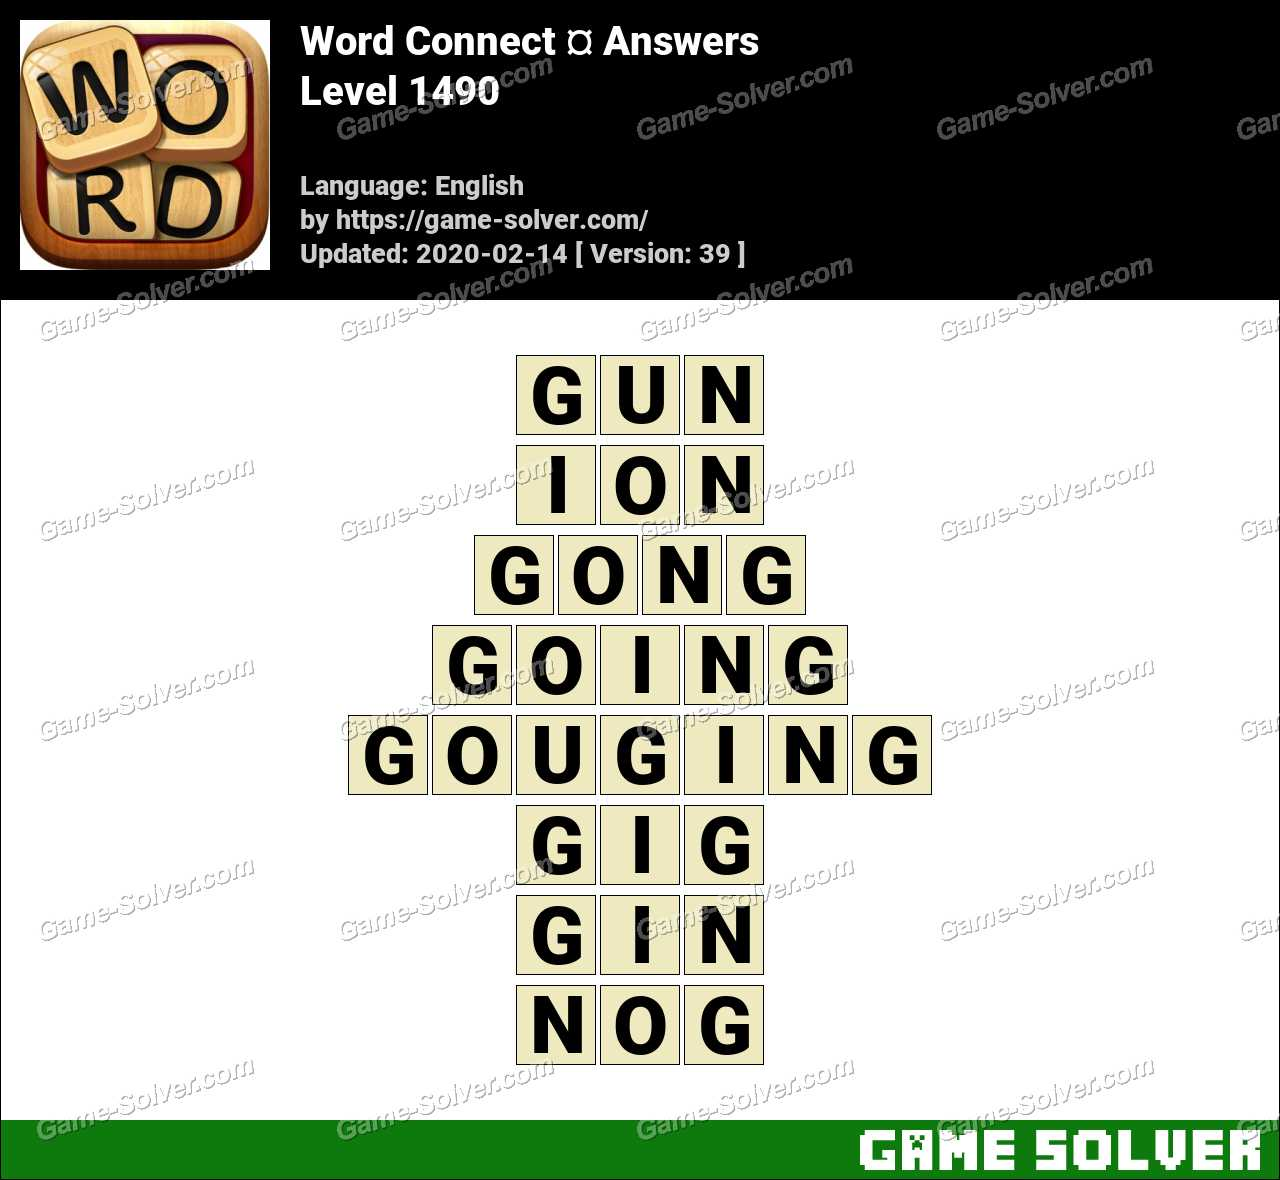 Word Connect Level 1490 Answers